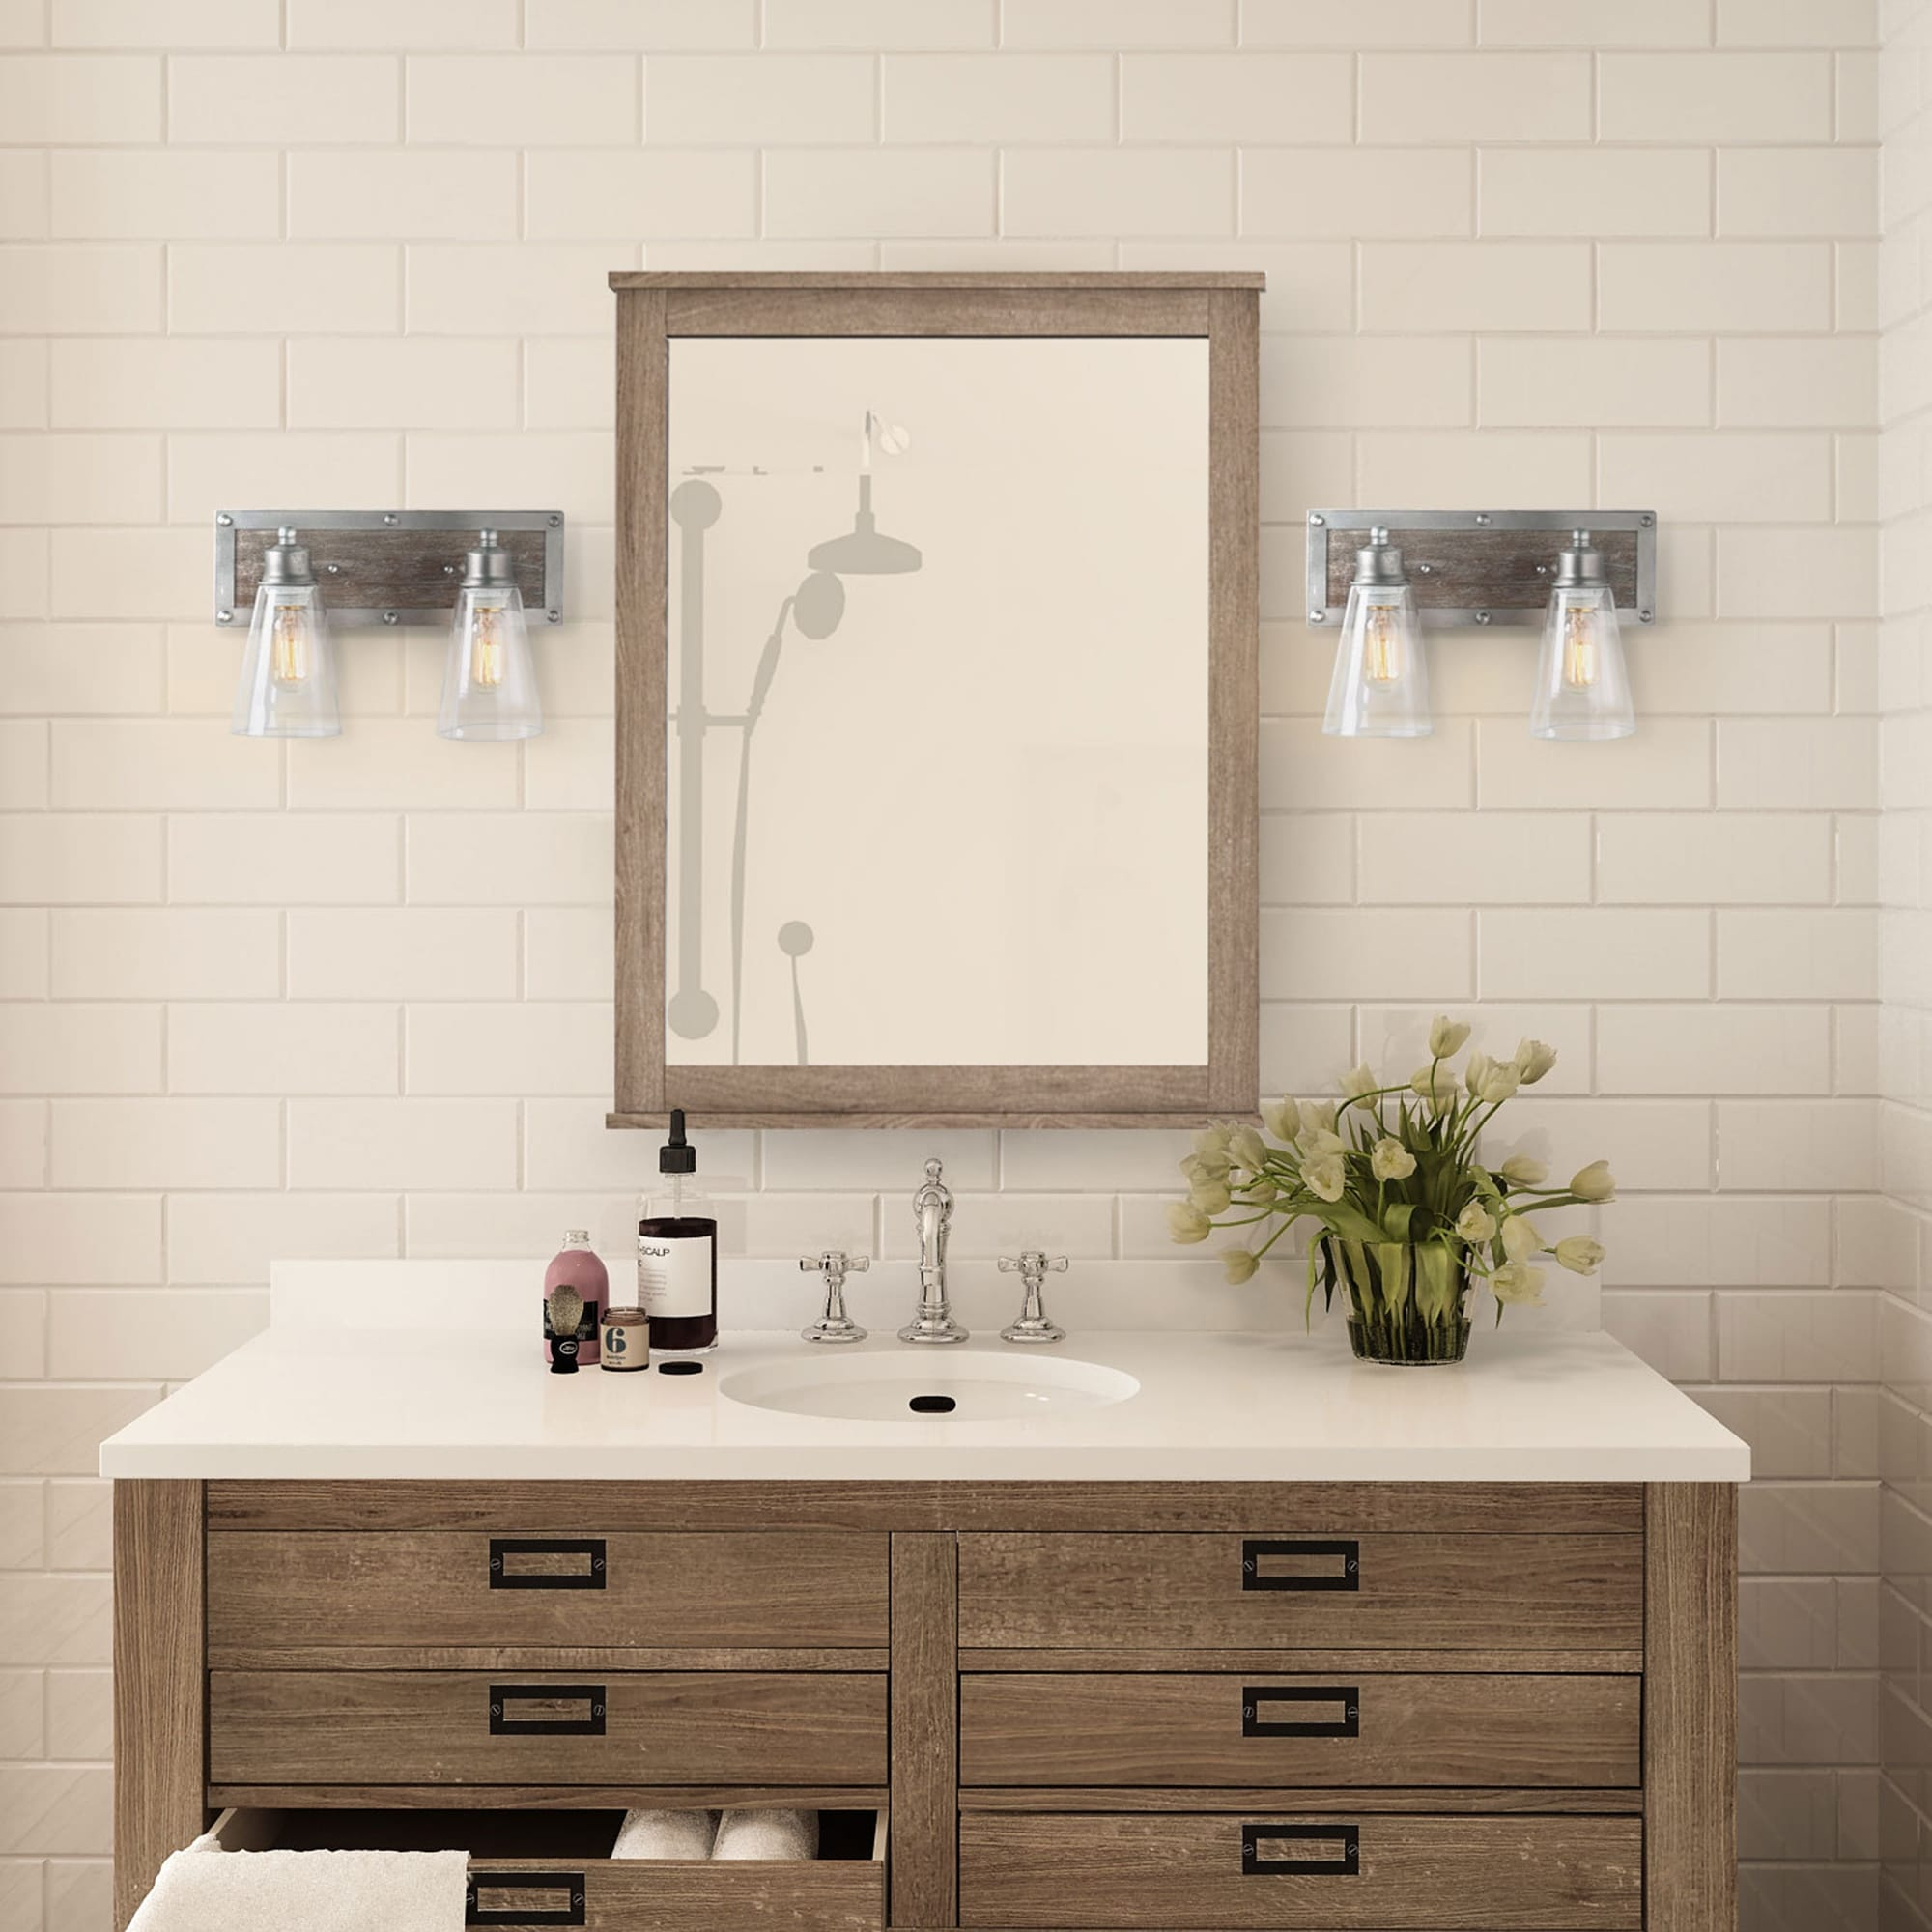 Rustic 2 Light Wood Wall Sconces Aged Silver Bathroom Vanity Wall Lights W14 X H9 X E6 7 Overstock 25454830